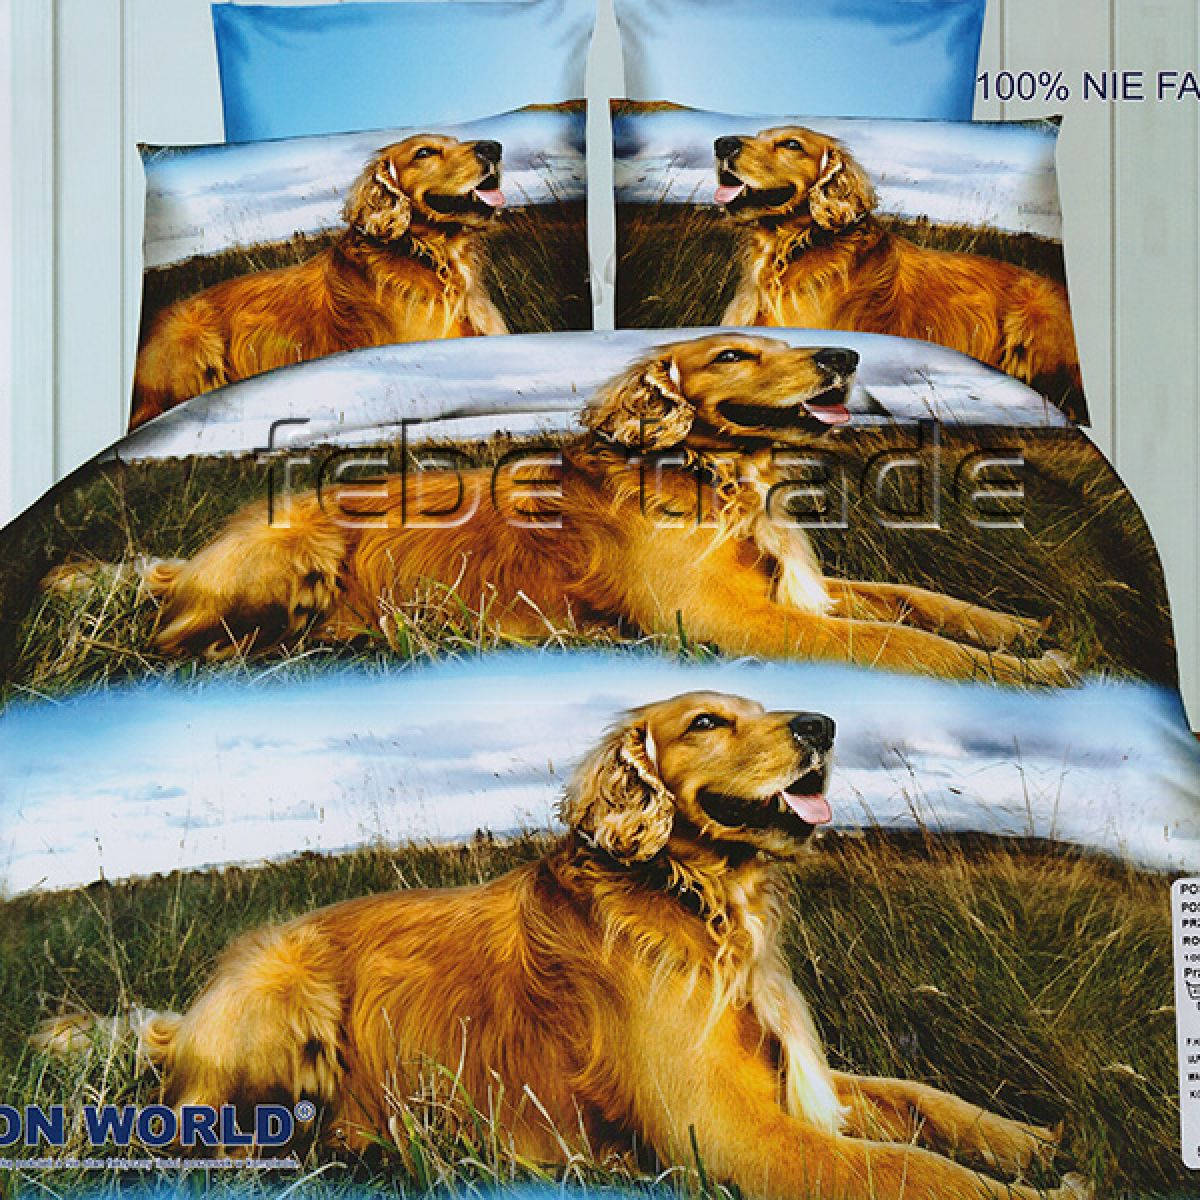 3D Beddings - Cotton World - FSH-205 - 220x200 cm - 4 cz